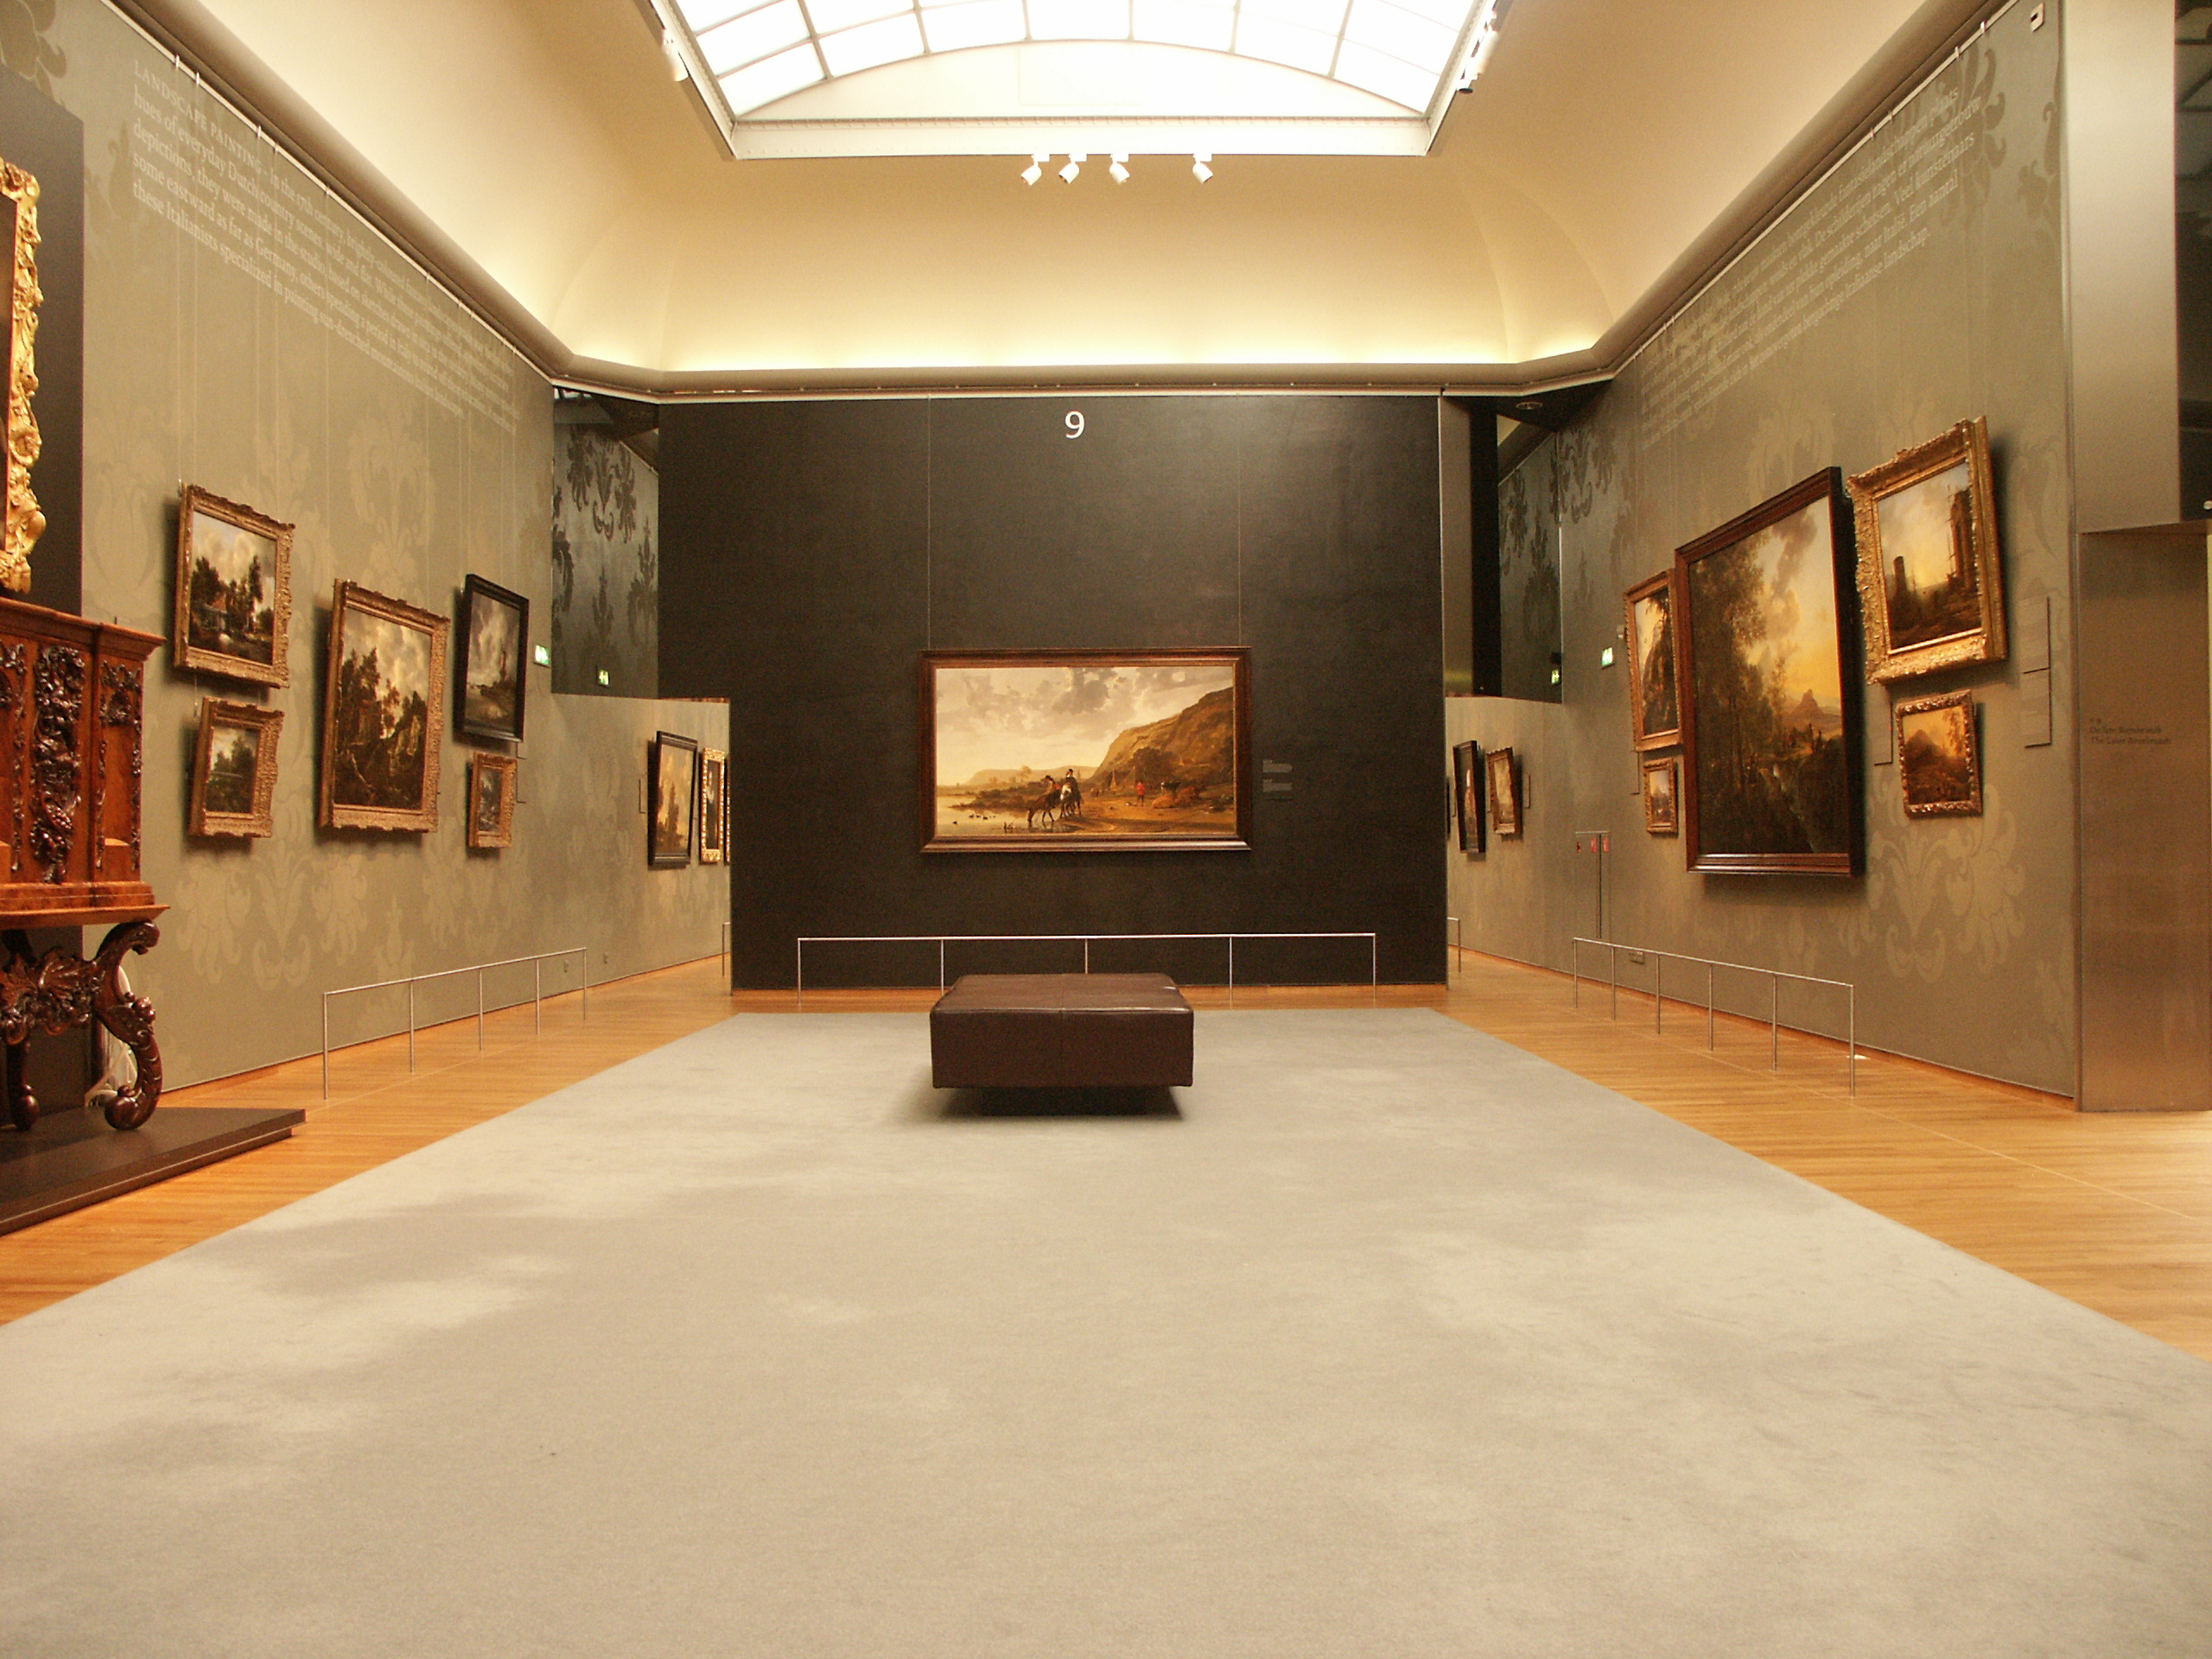 http://upload.wikimedia.org/wikipedia/commons/3/3f/Jvas_rijksmuseum.jpg